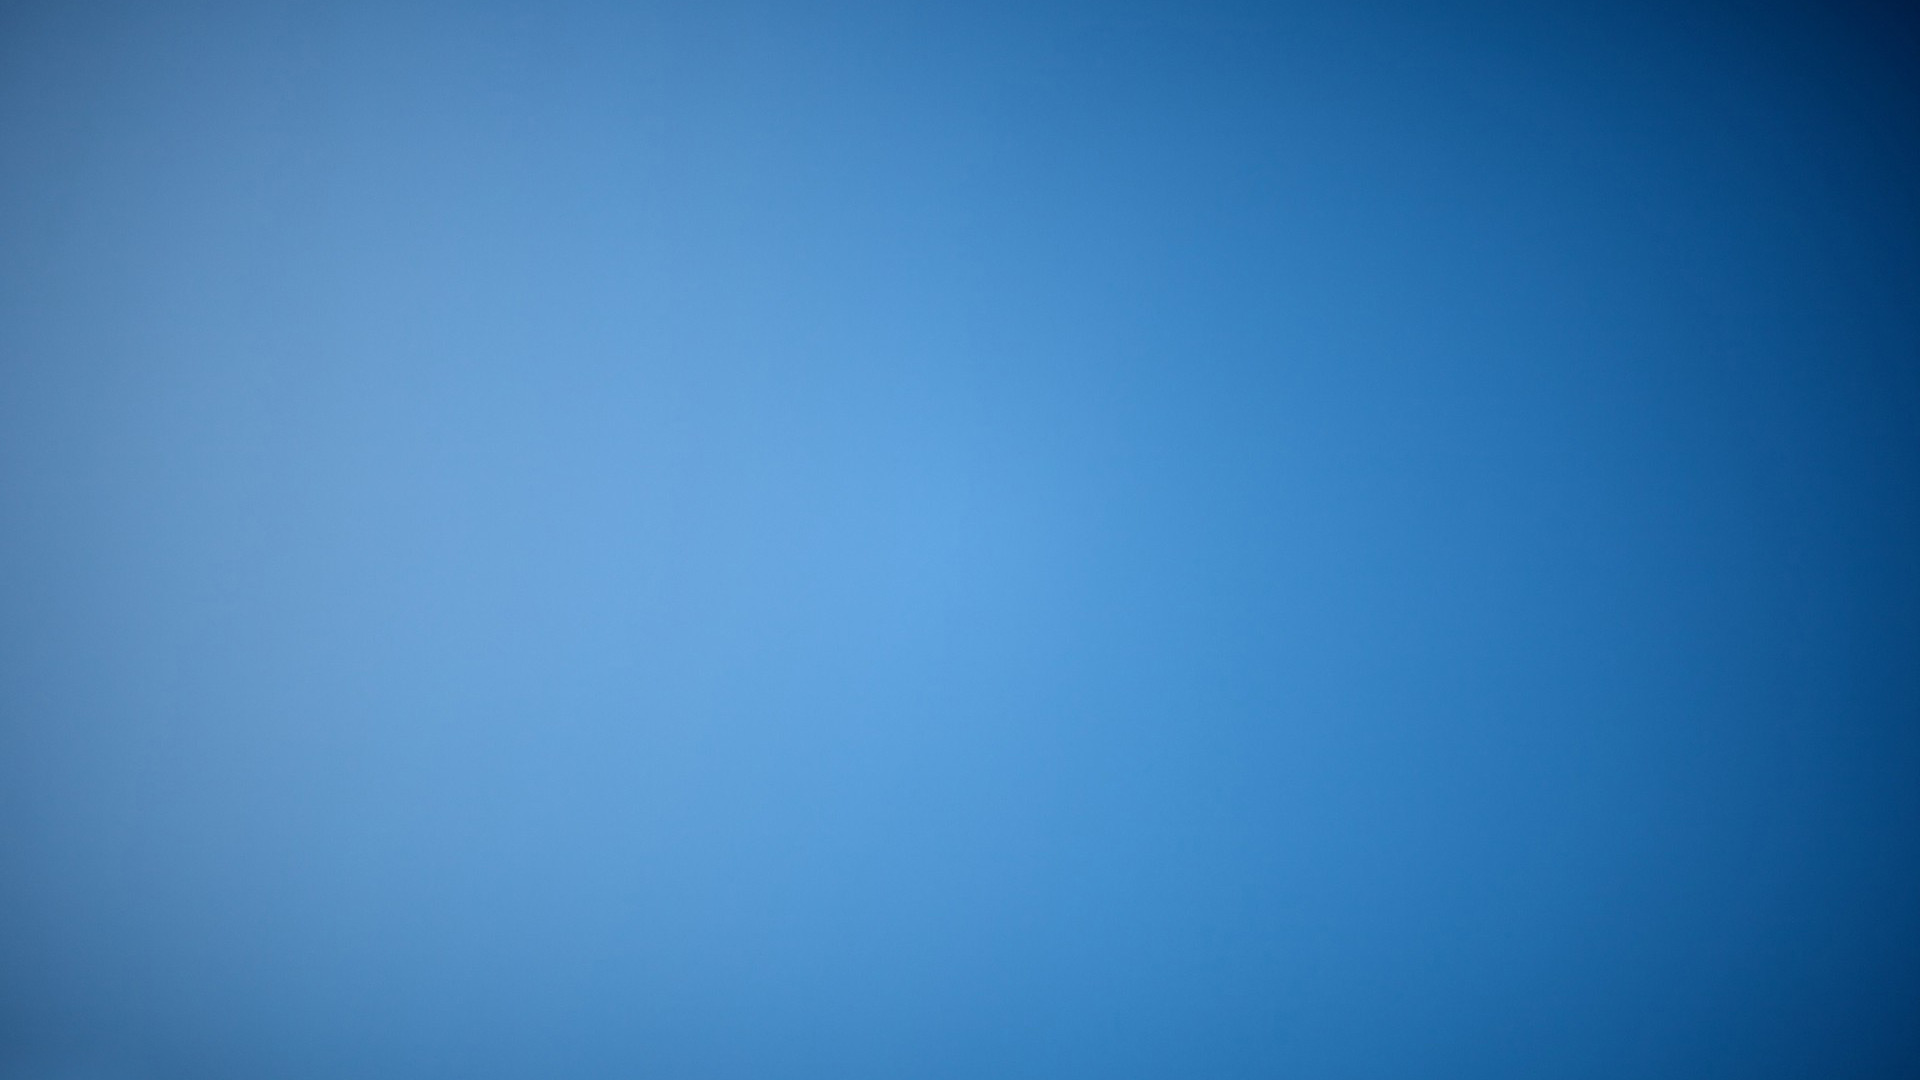 Blue Gradient Wallpaper 399 448 Hd Wallpapers Gottlieb